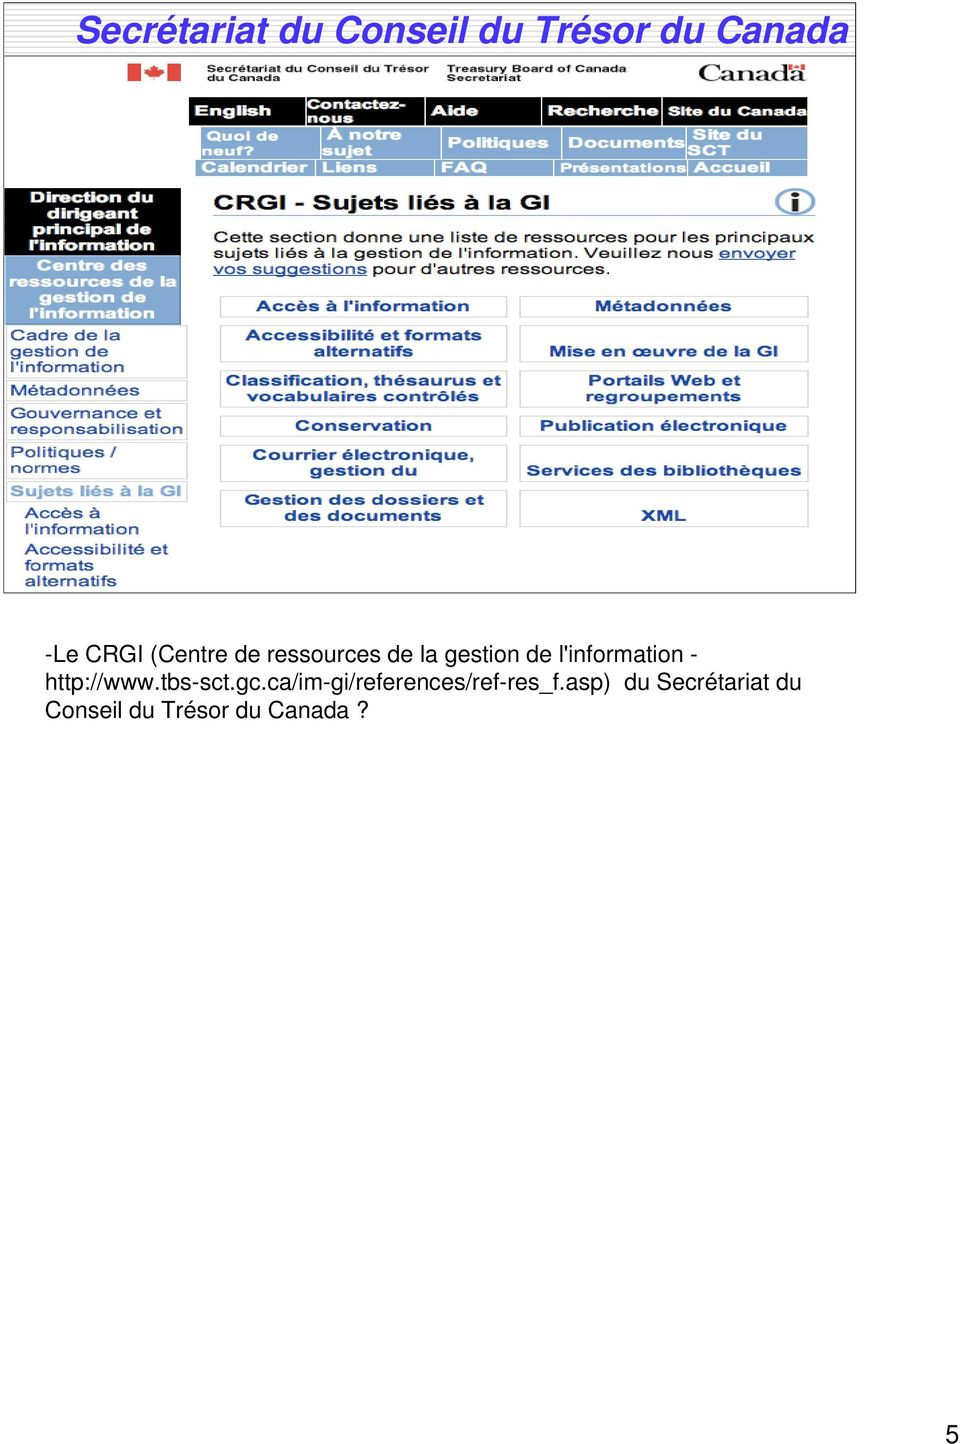 (Centre de ressources de la gestion de l'information - http://www.tbs-sct.gc.